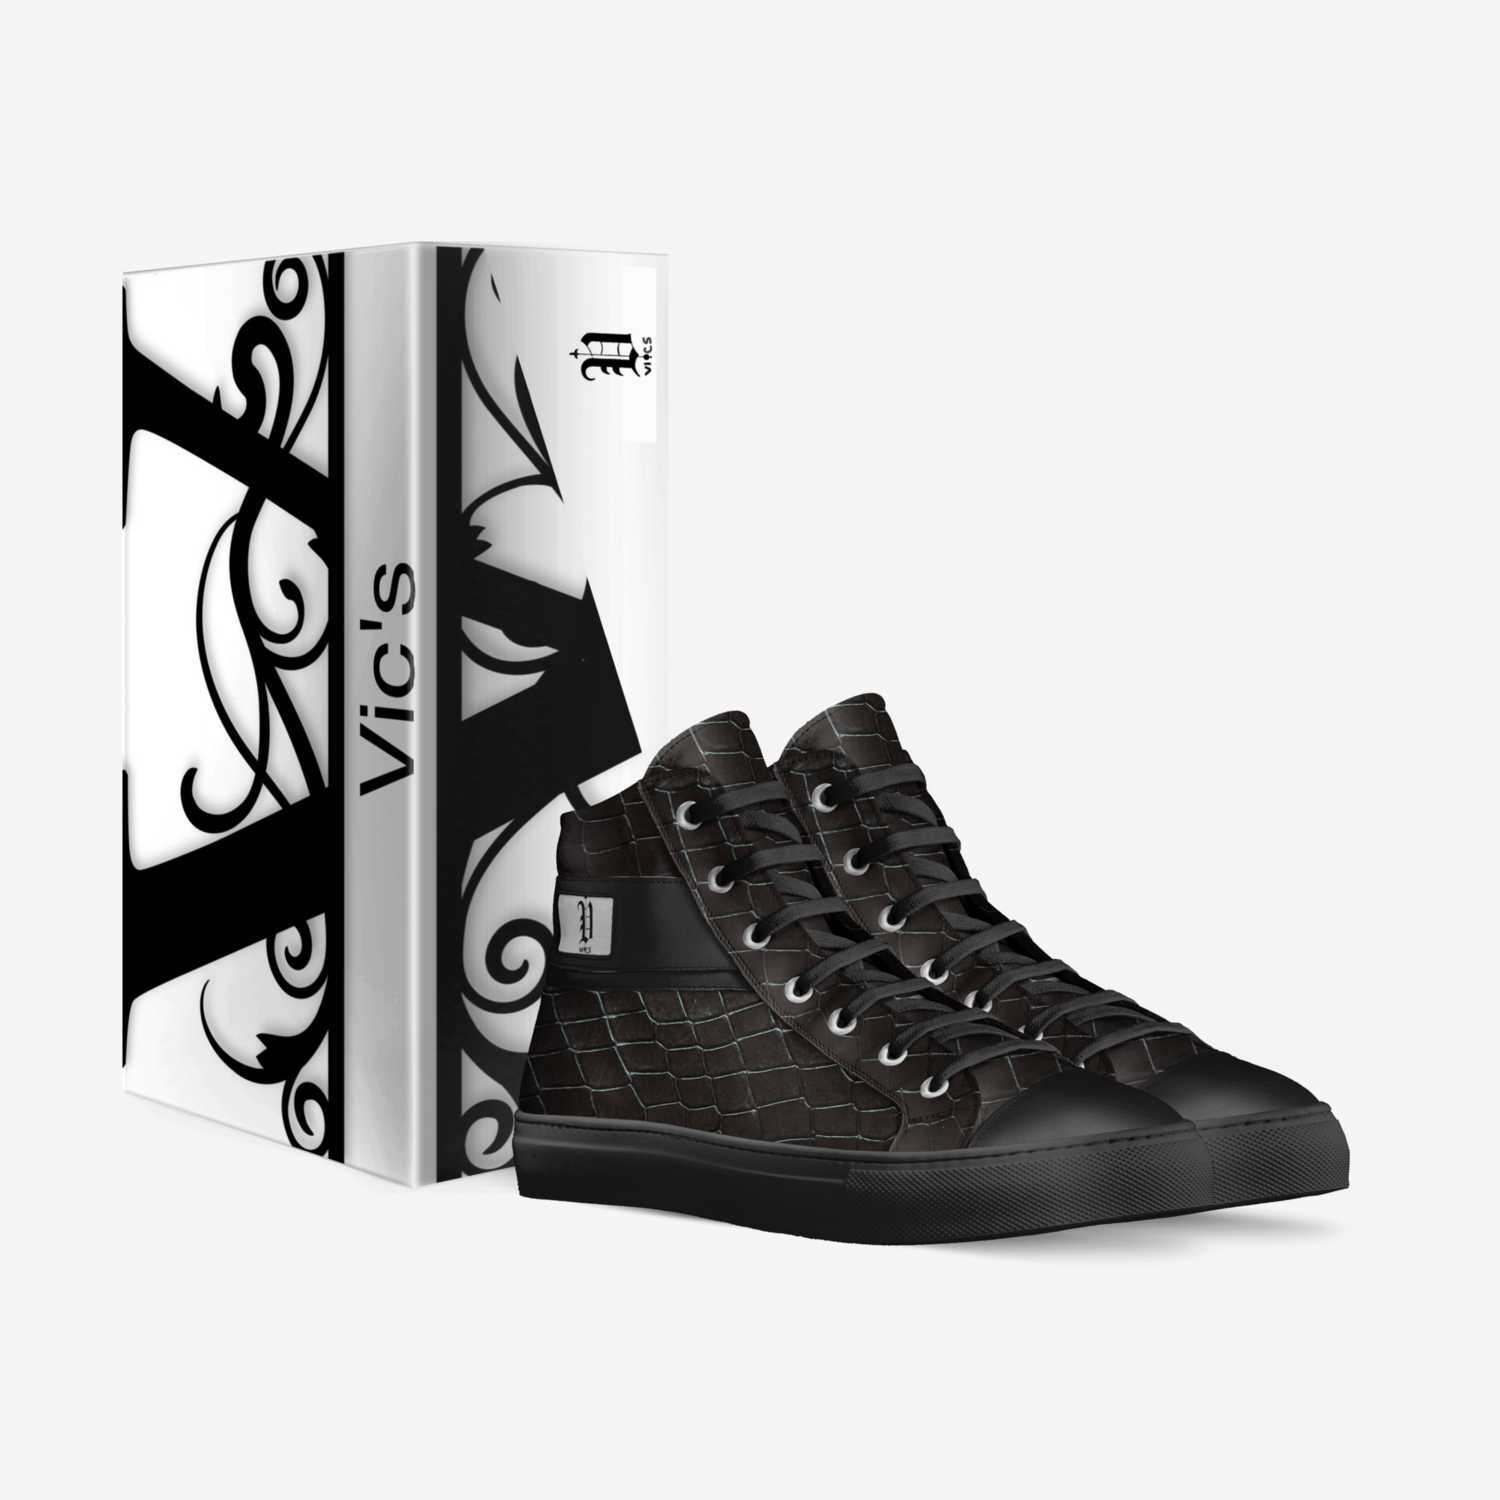 vics  custom made in Italy shoes by Brayden Murphy | Box view